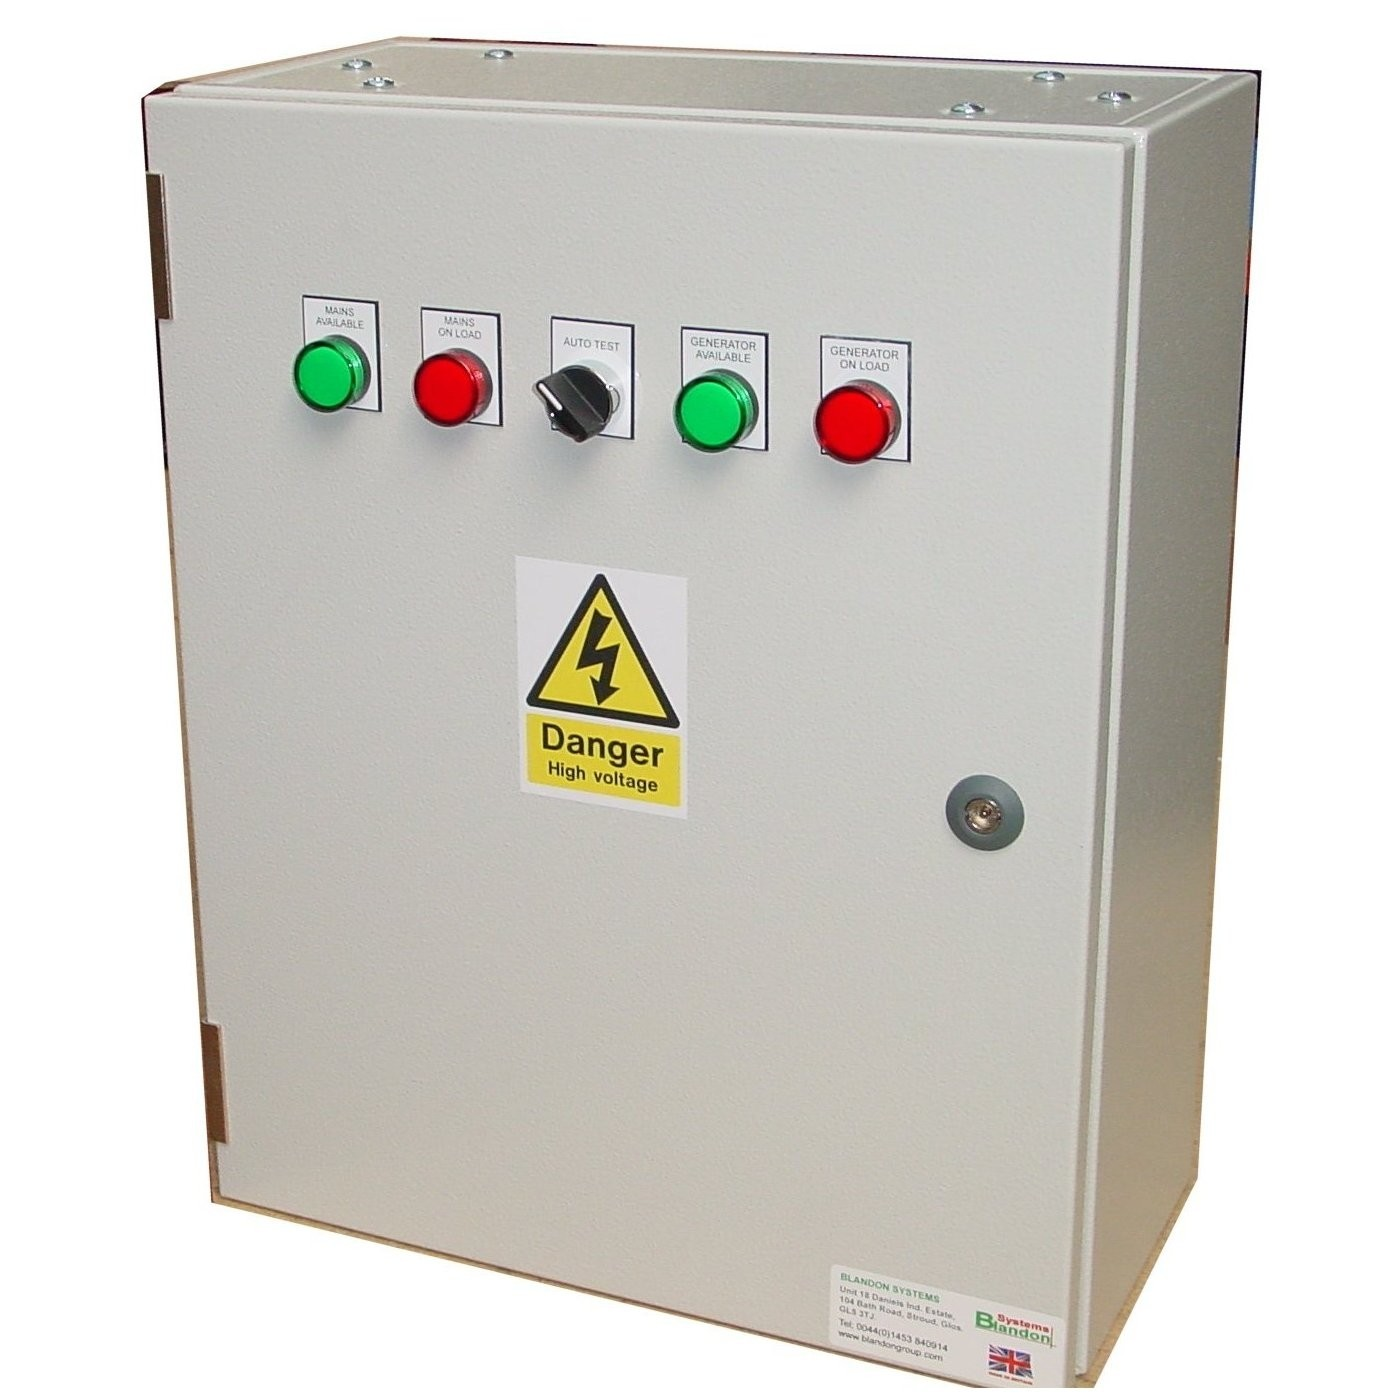 70A ATS 3 Phase 400V, UVR Controlled, ABB Contactors